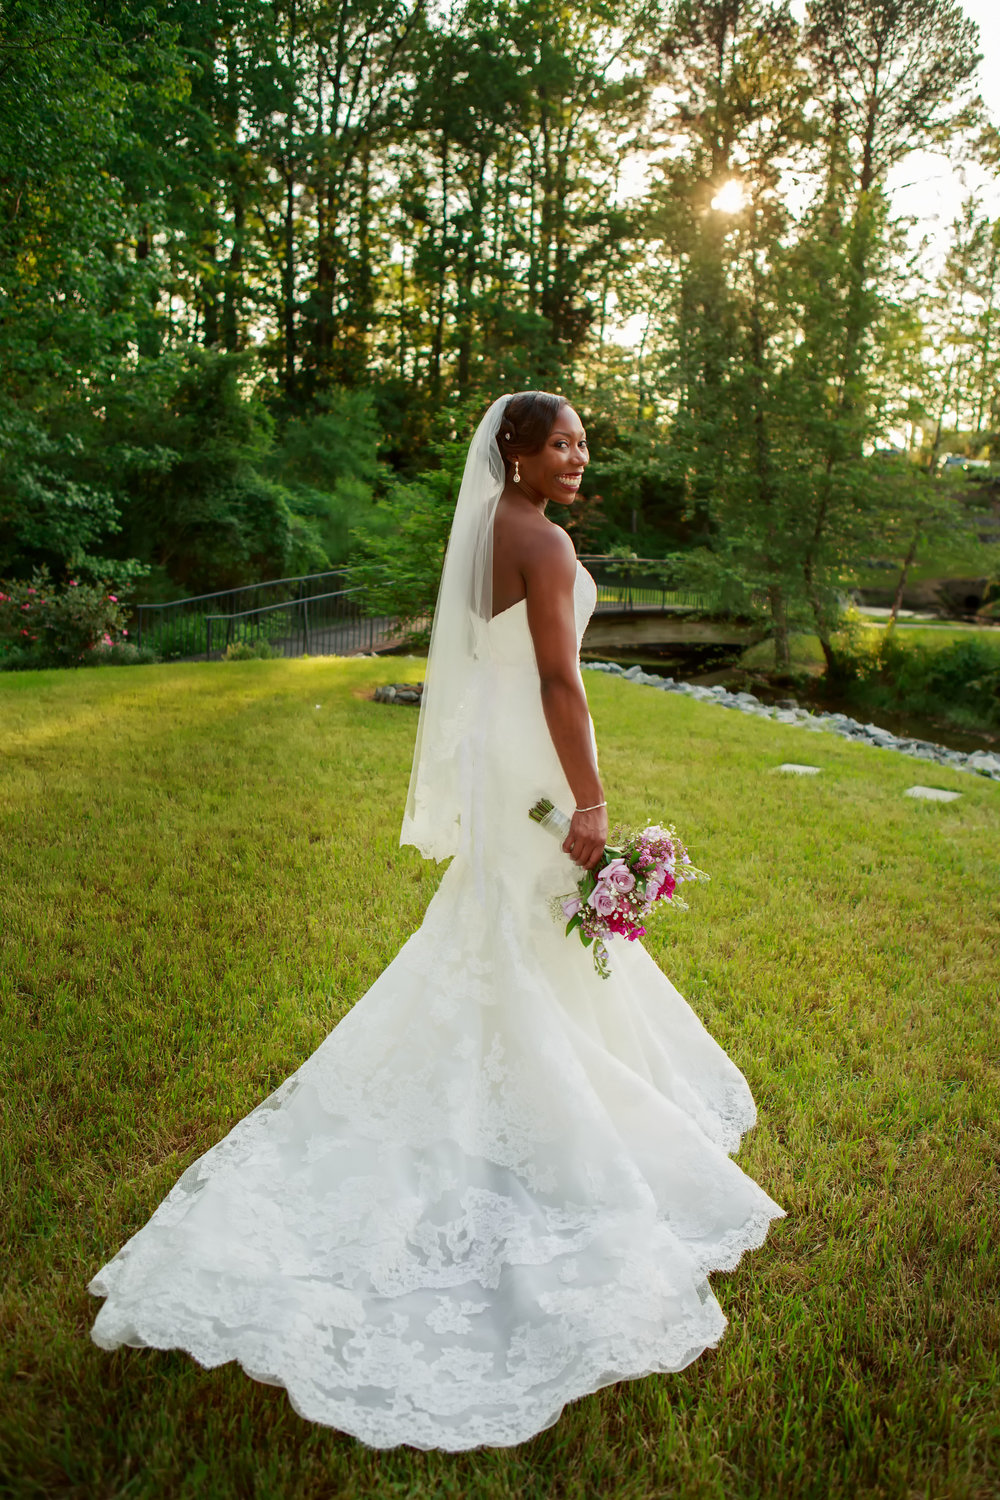 Maryland Photographer │ Tiffany Abruzzo Photography